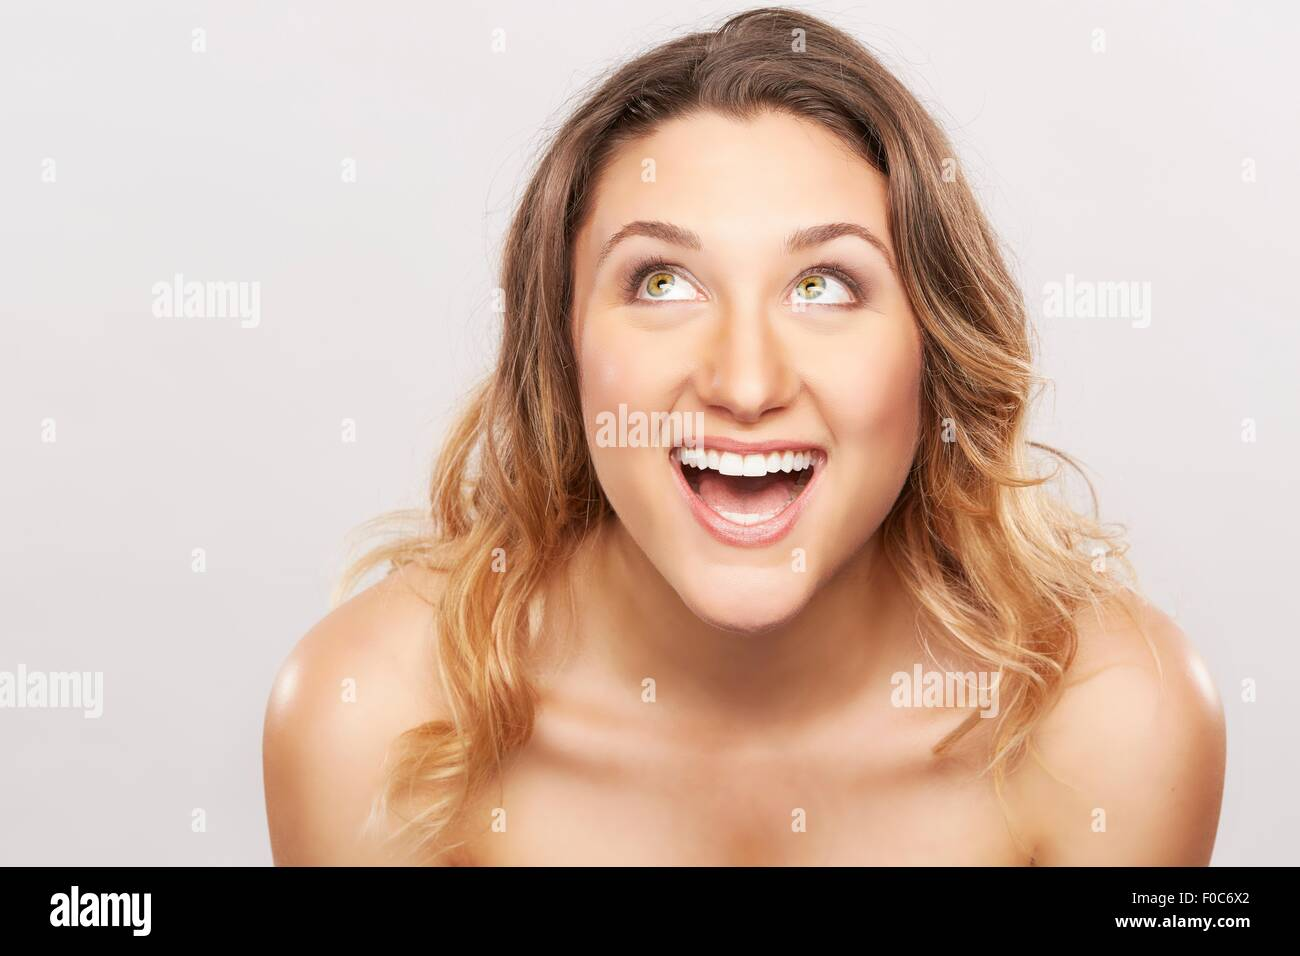 Young woman with bare shoulders laughing - Stock Image